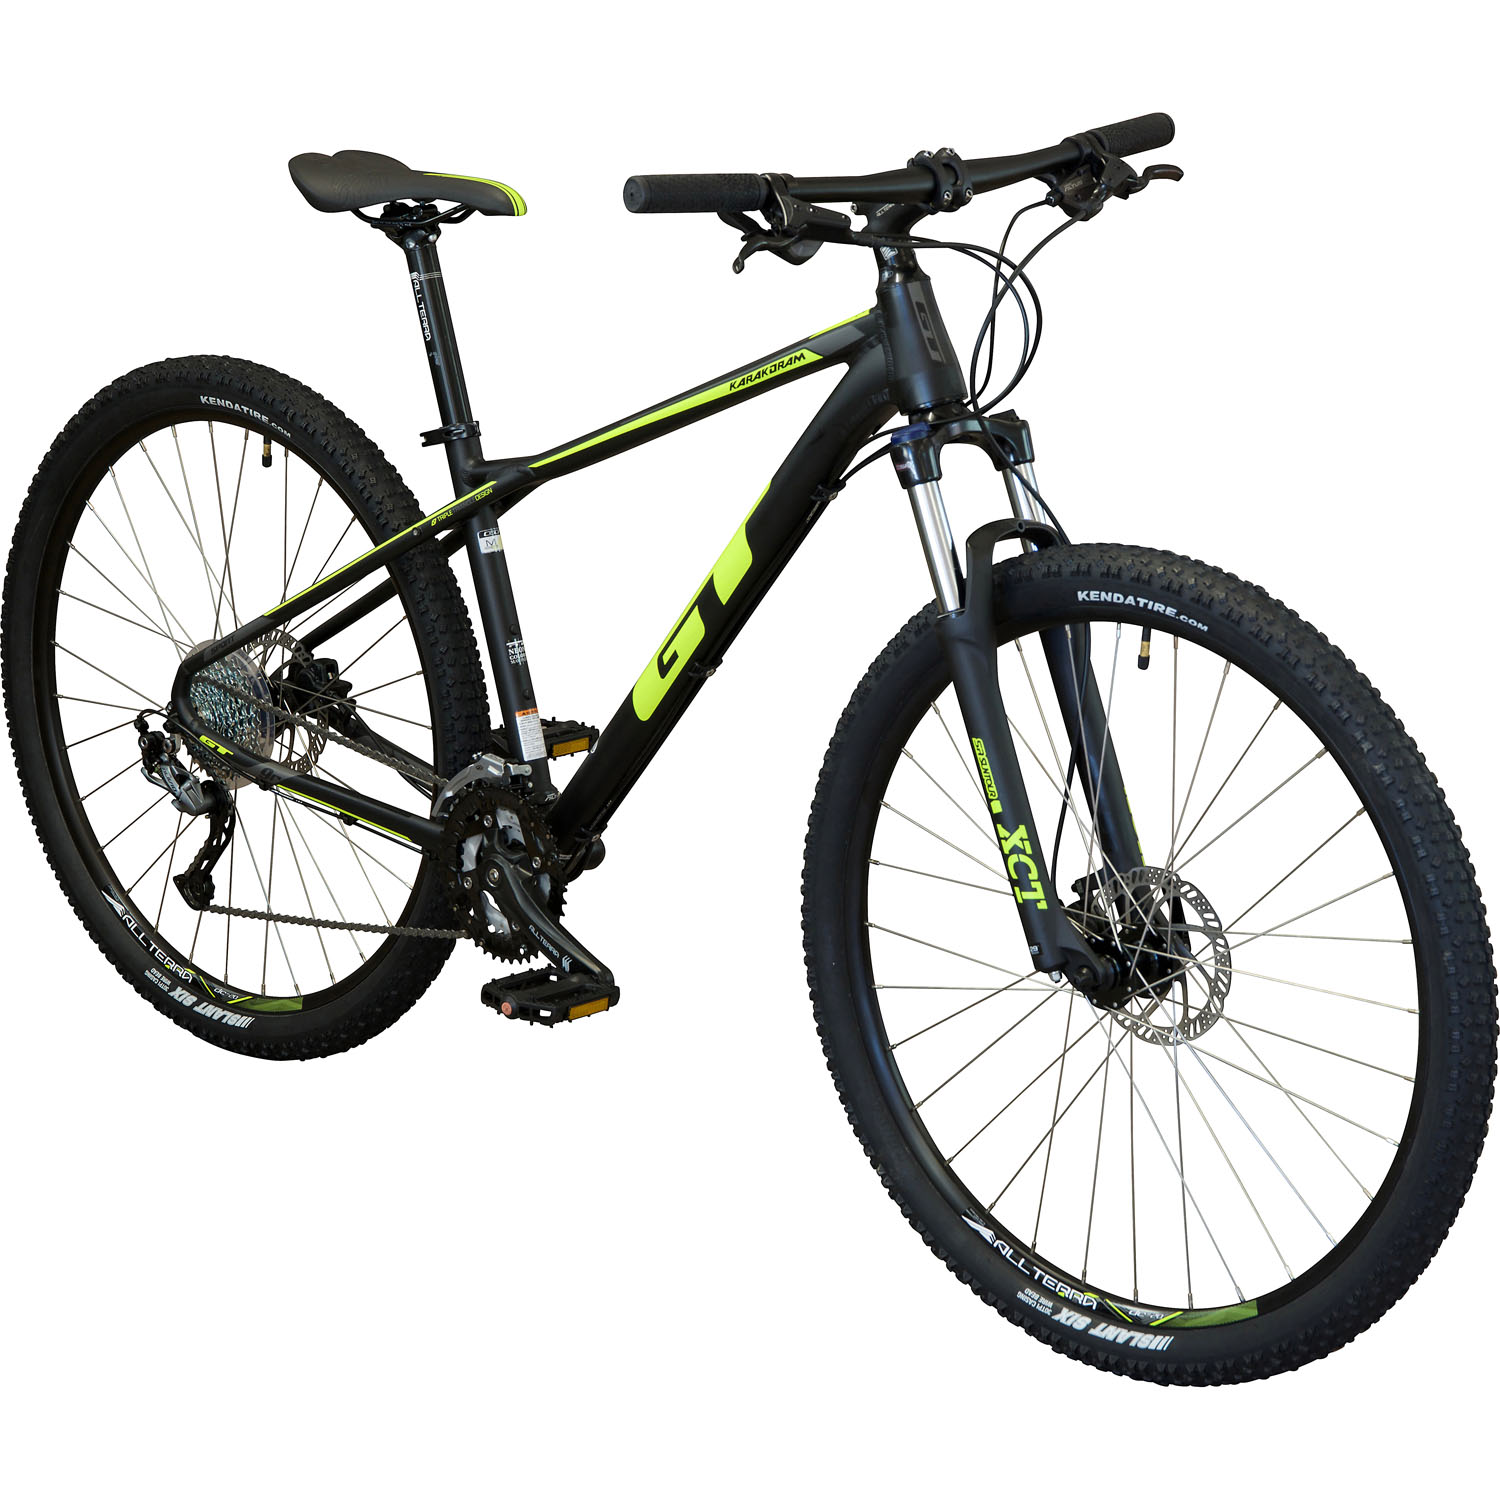 gt karakoram sport hardtail mountainbike 29 zoll s 38 cm. Black Bedroom Furniture Sets. Home Design Ideas